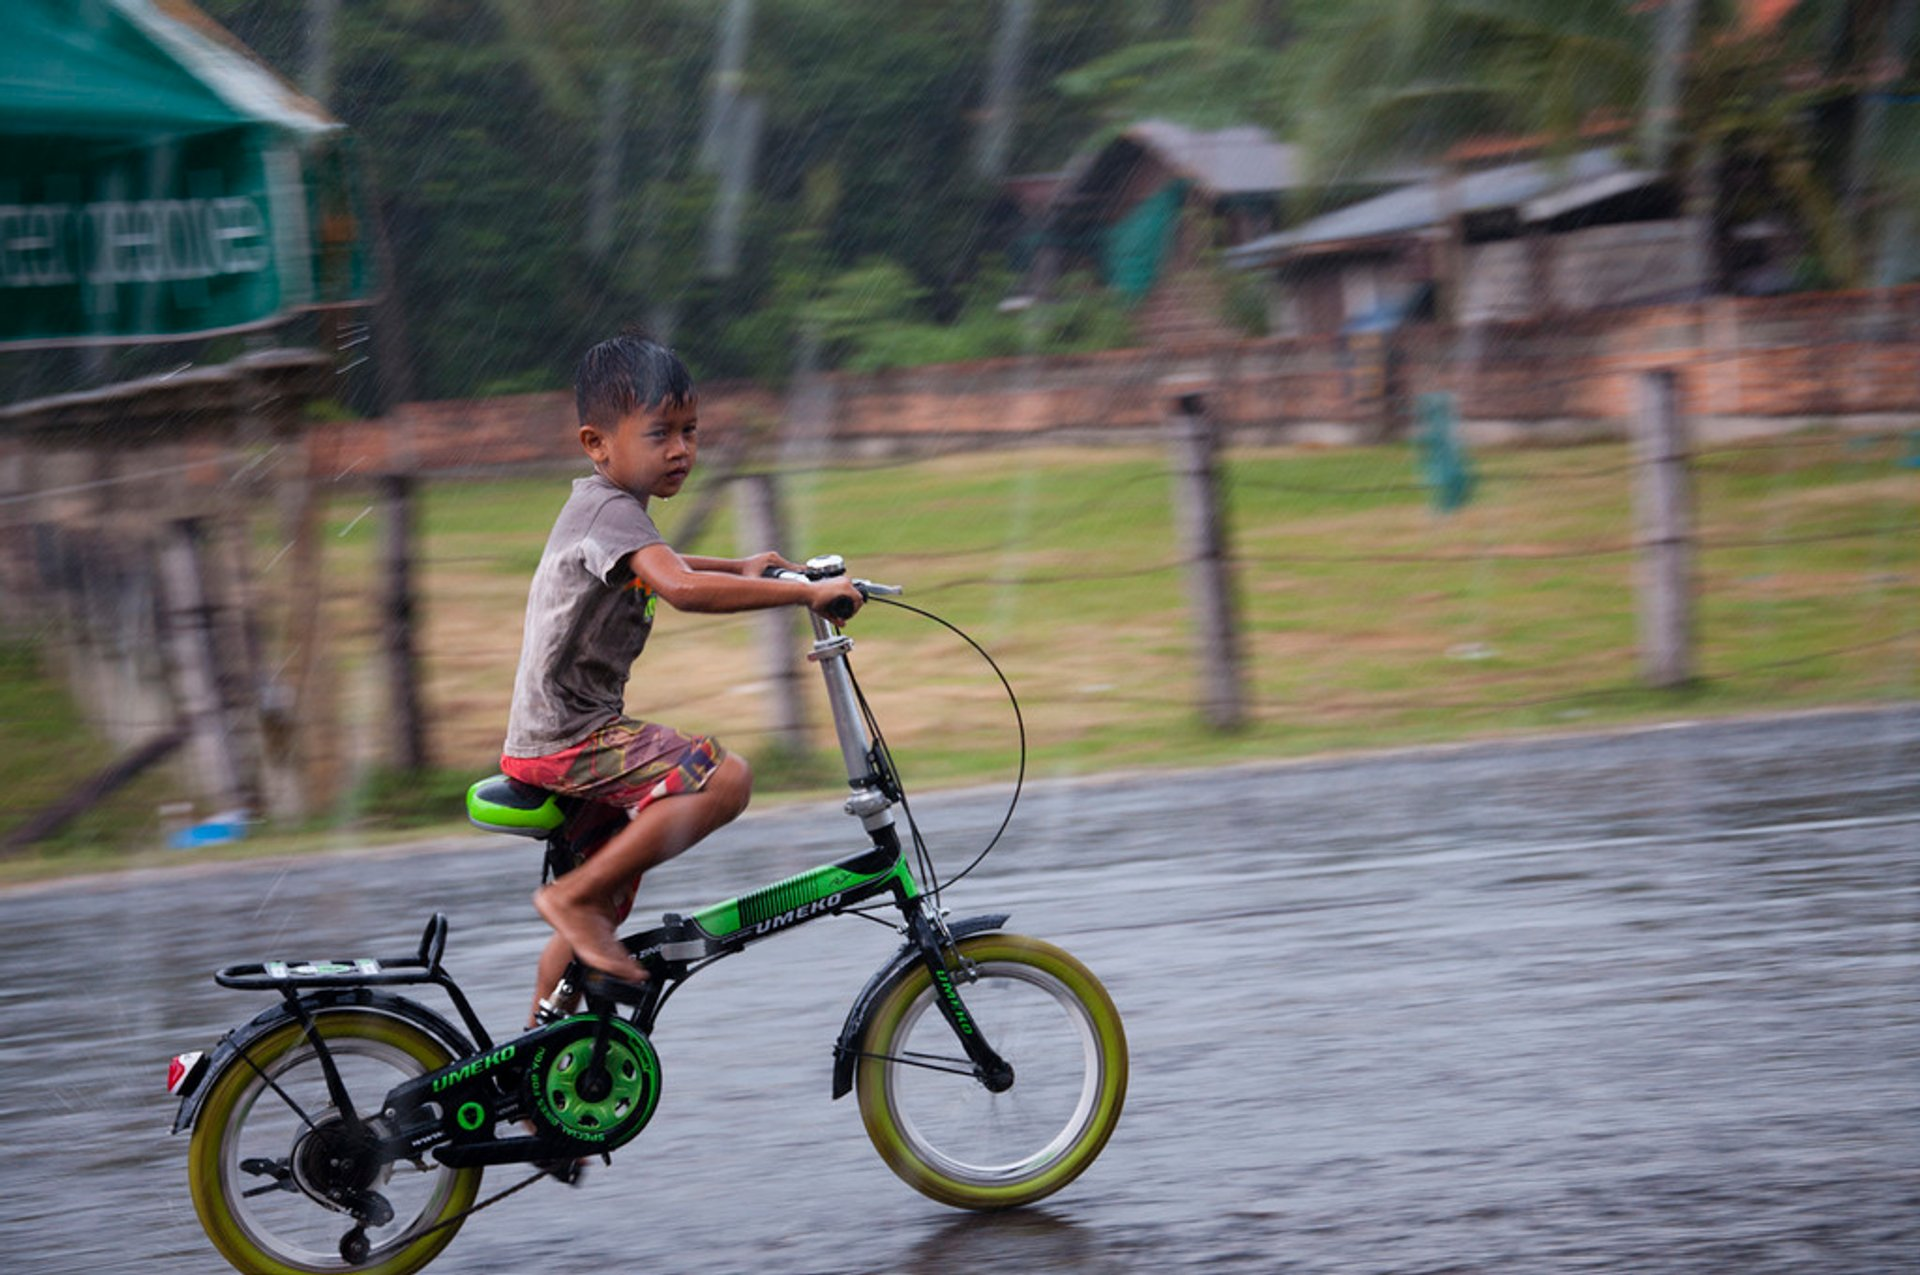 Cycling in Laos 2020 - Best Time